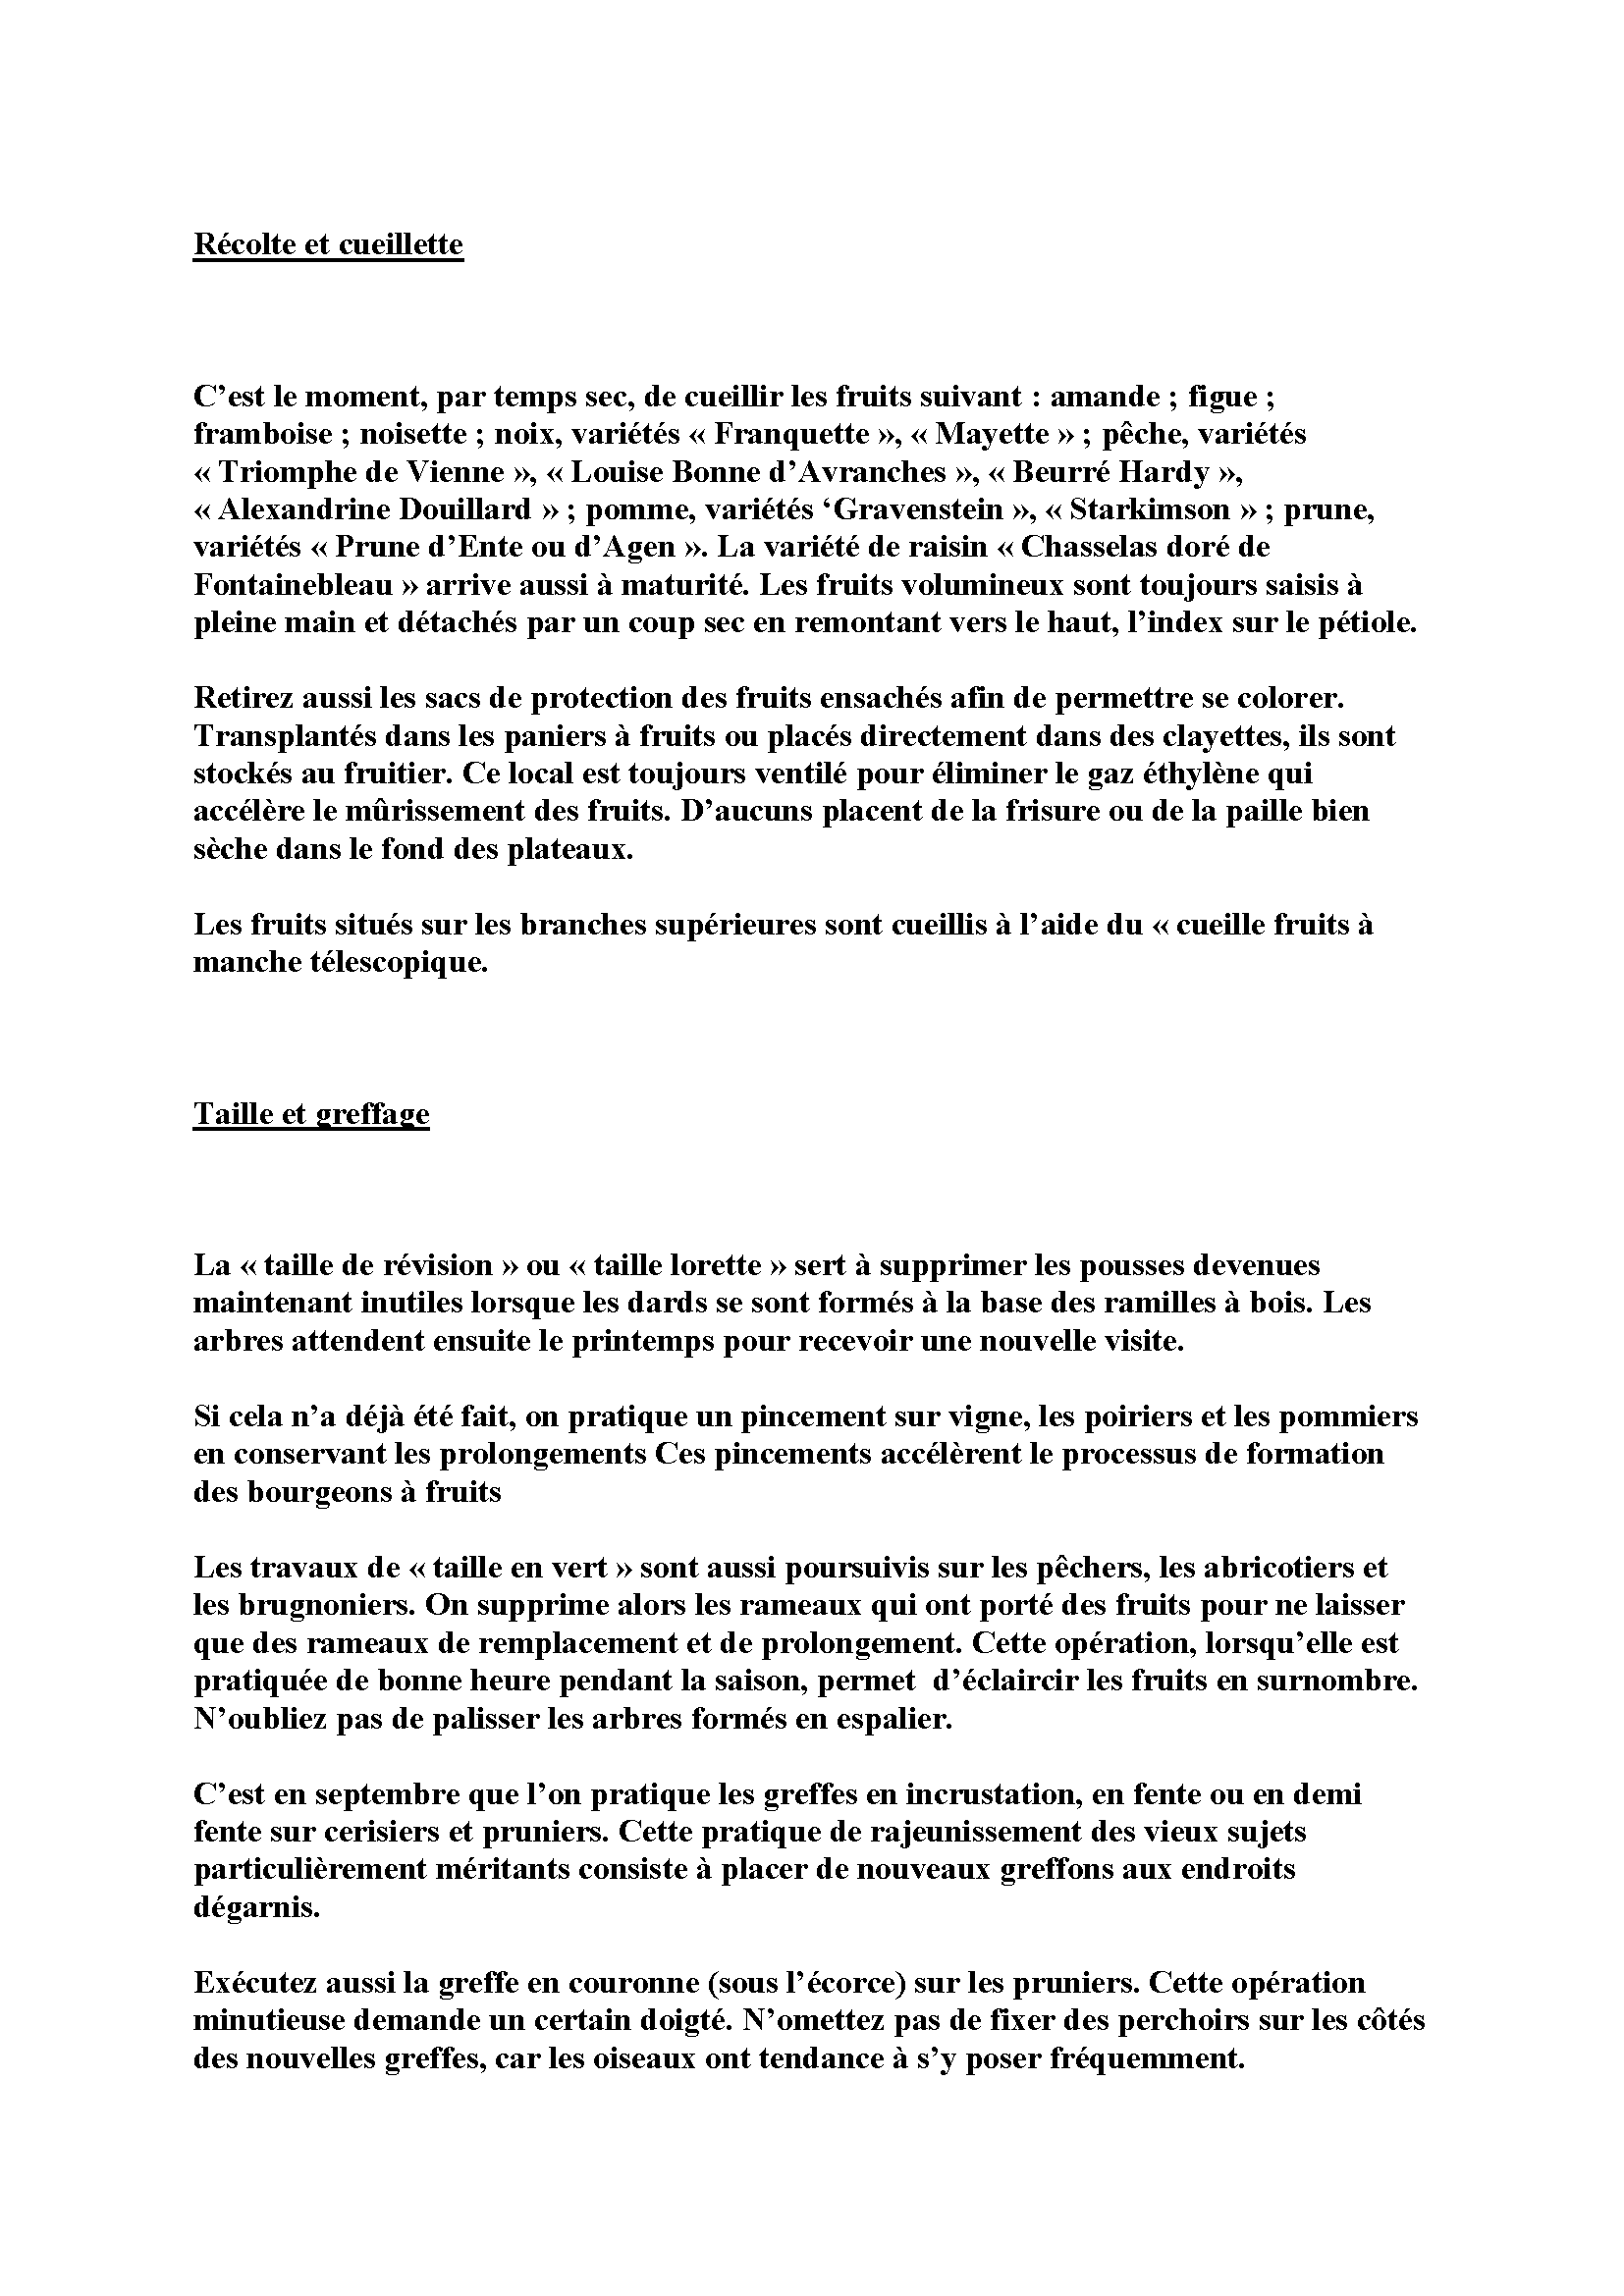 http://palife.free.fr/up/Travaux%20de%20septembre_Page_04.png